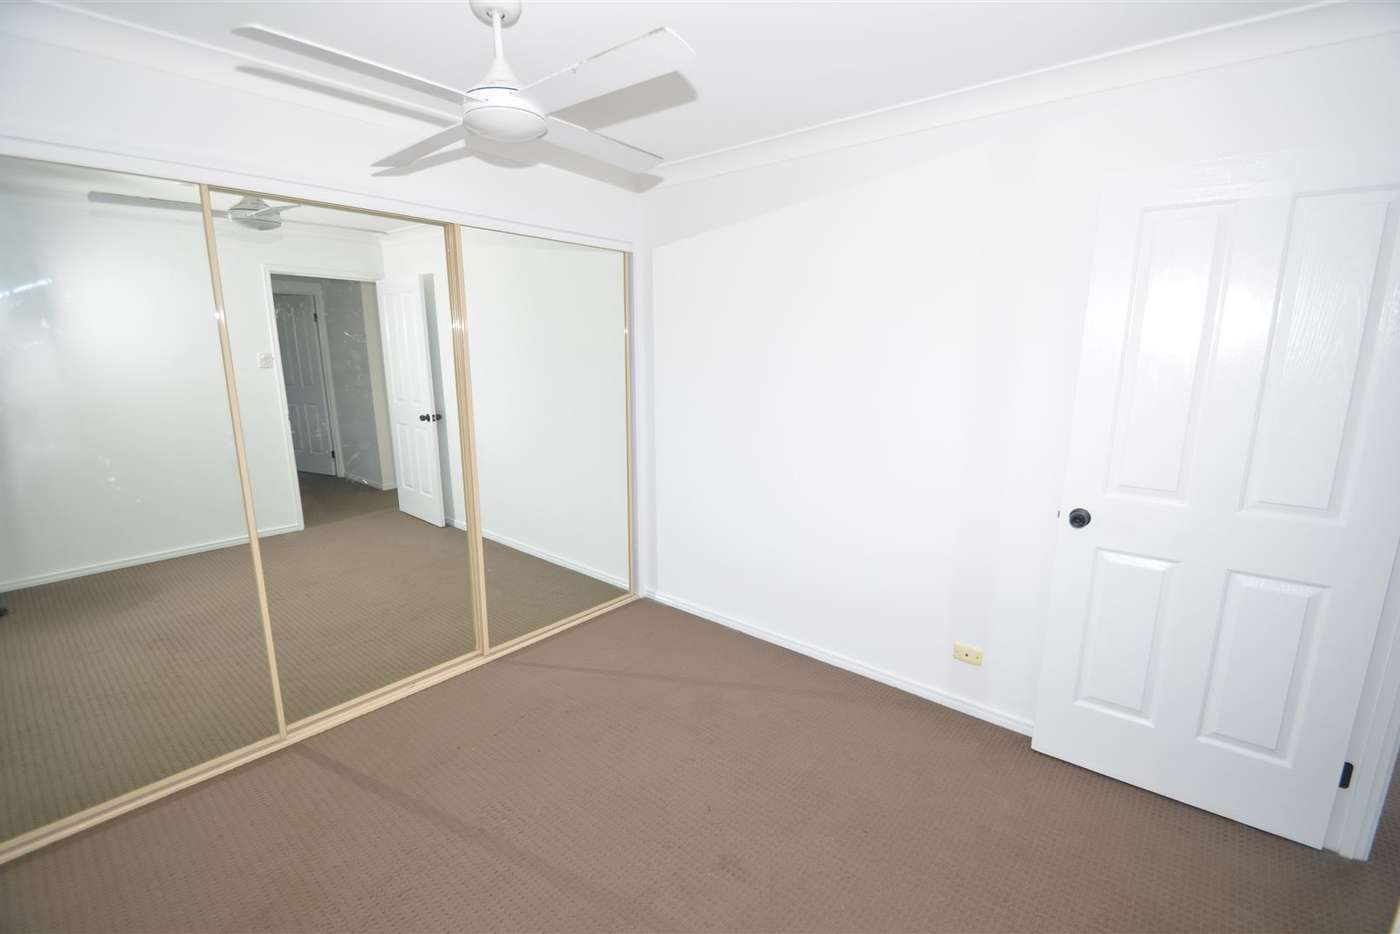 Sixth view of Homely house listing, 22 Greensborough Crescent, Parkwood QLD 4214